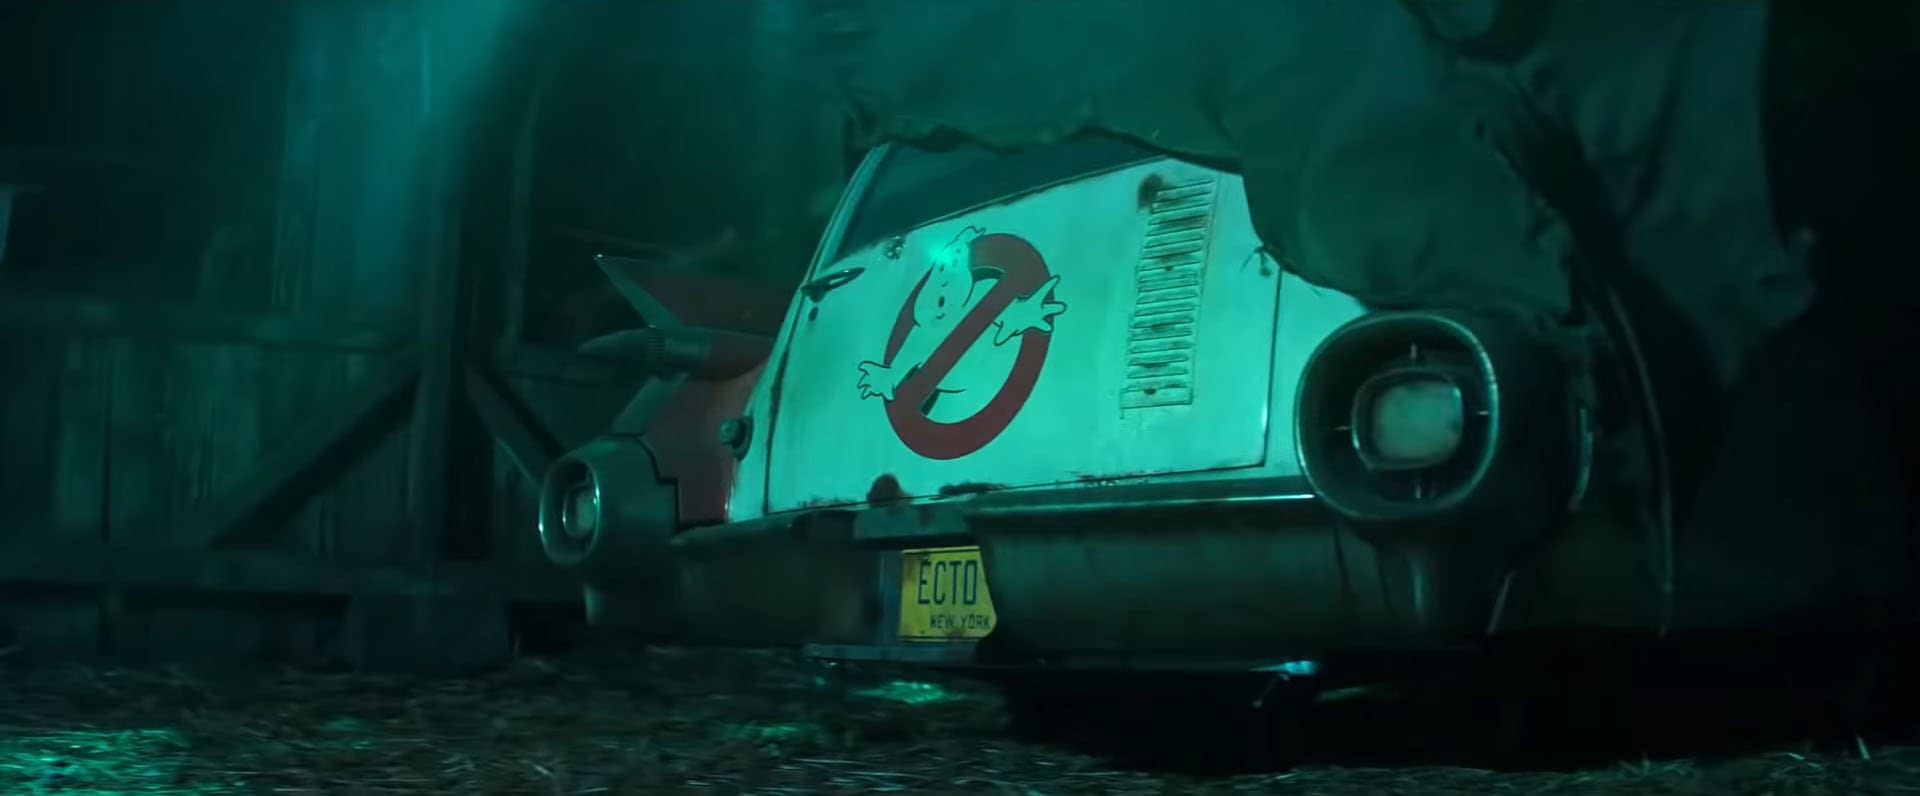 Hasbro Acquires Master Toy License for Ghostbusters